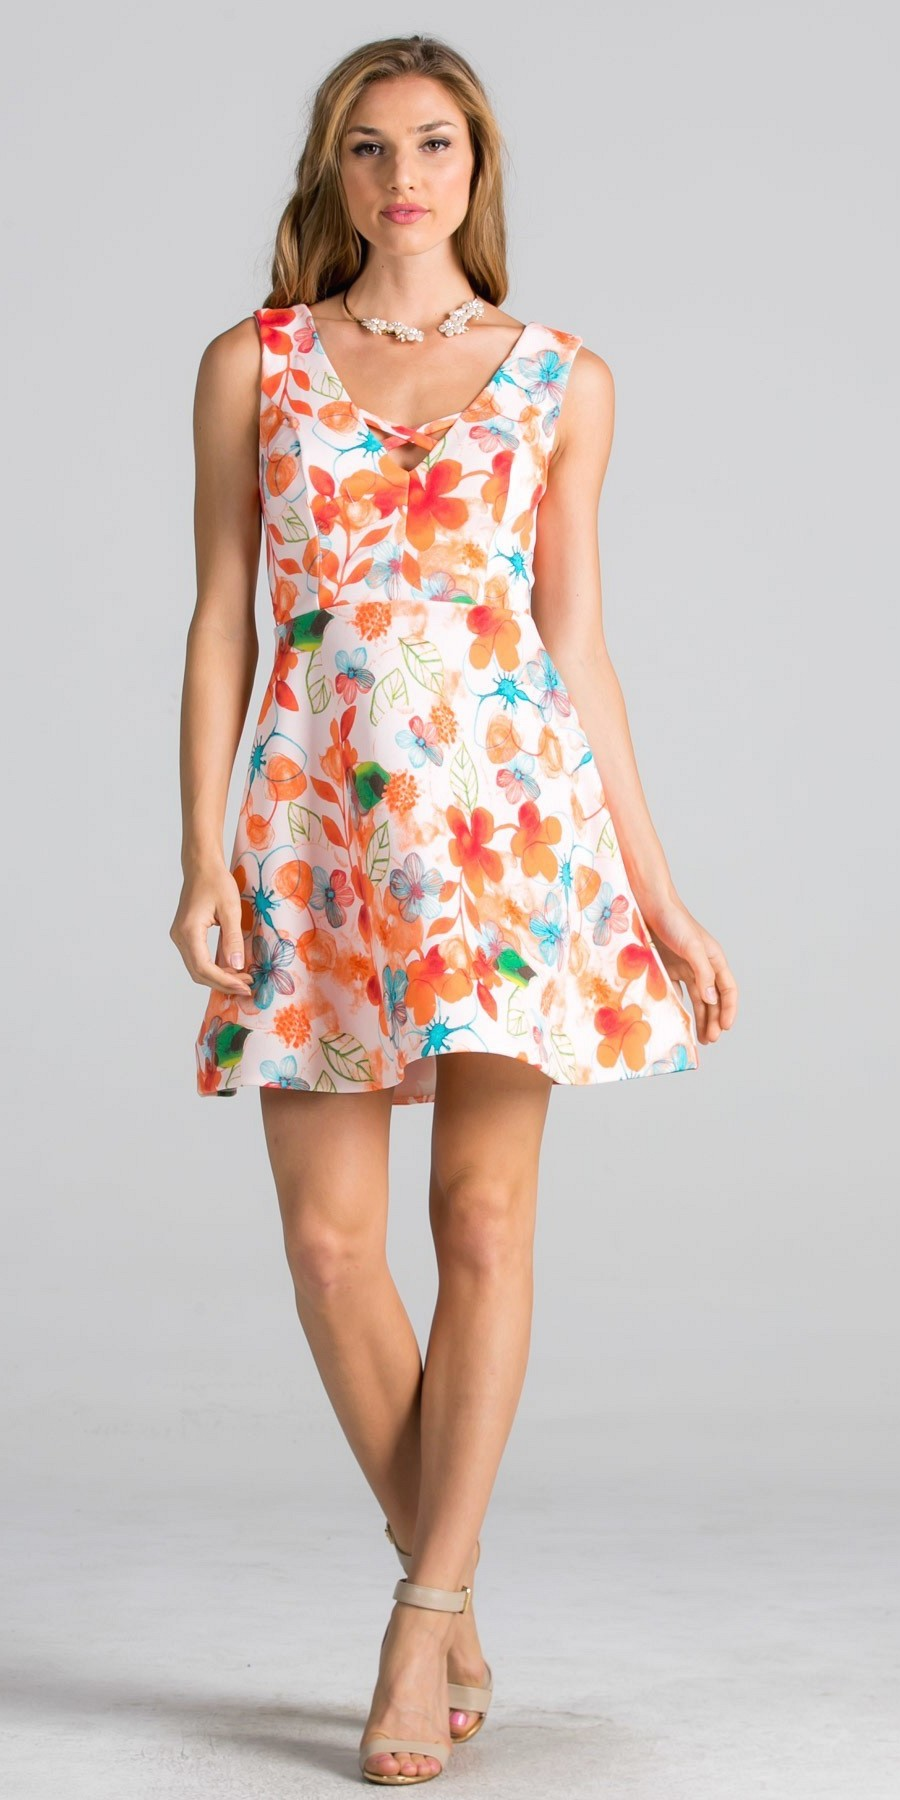 Coral Sleeveless Short Cocktail Dress with Floral Print